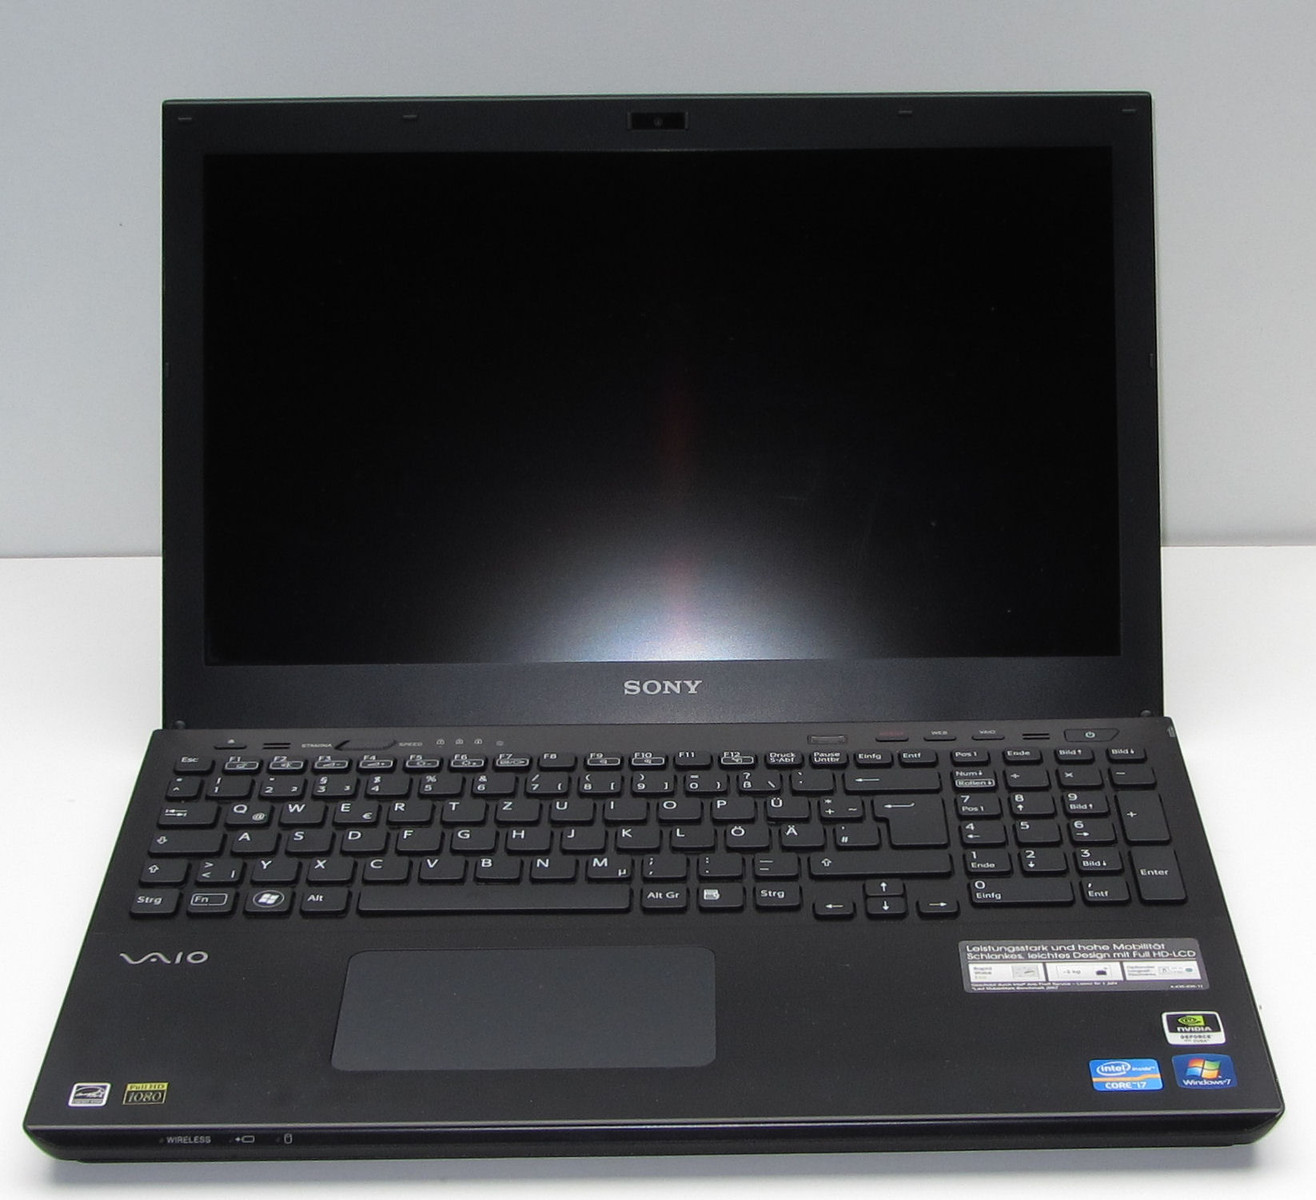 SONY VAIO SVS151A11L WINDOWS XP DRIVER